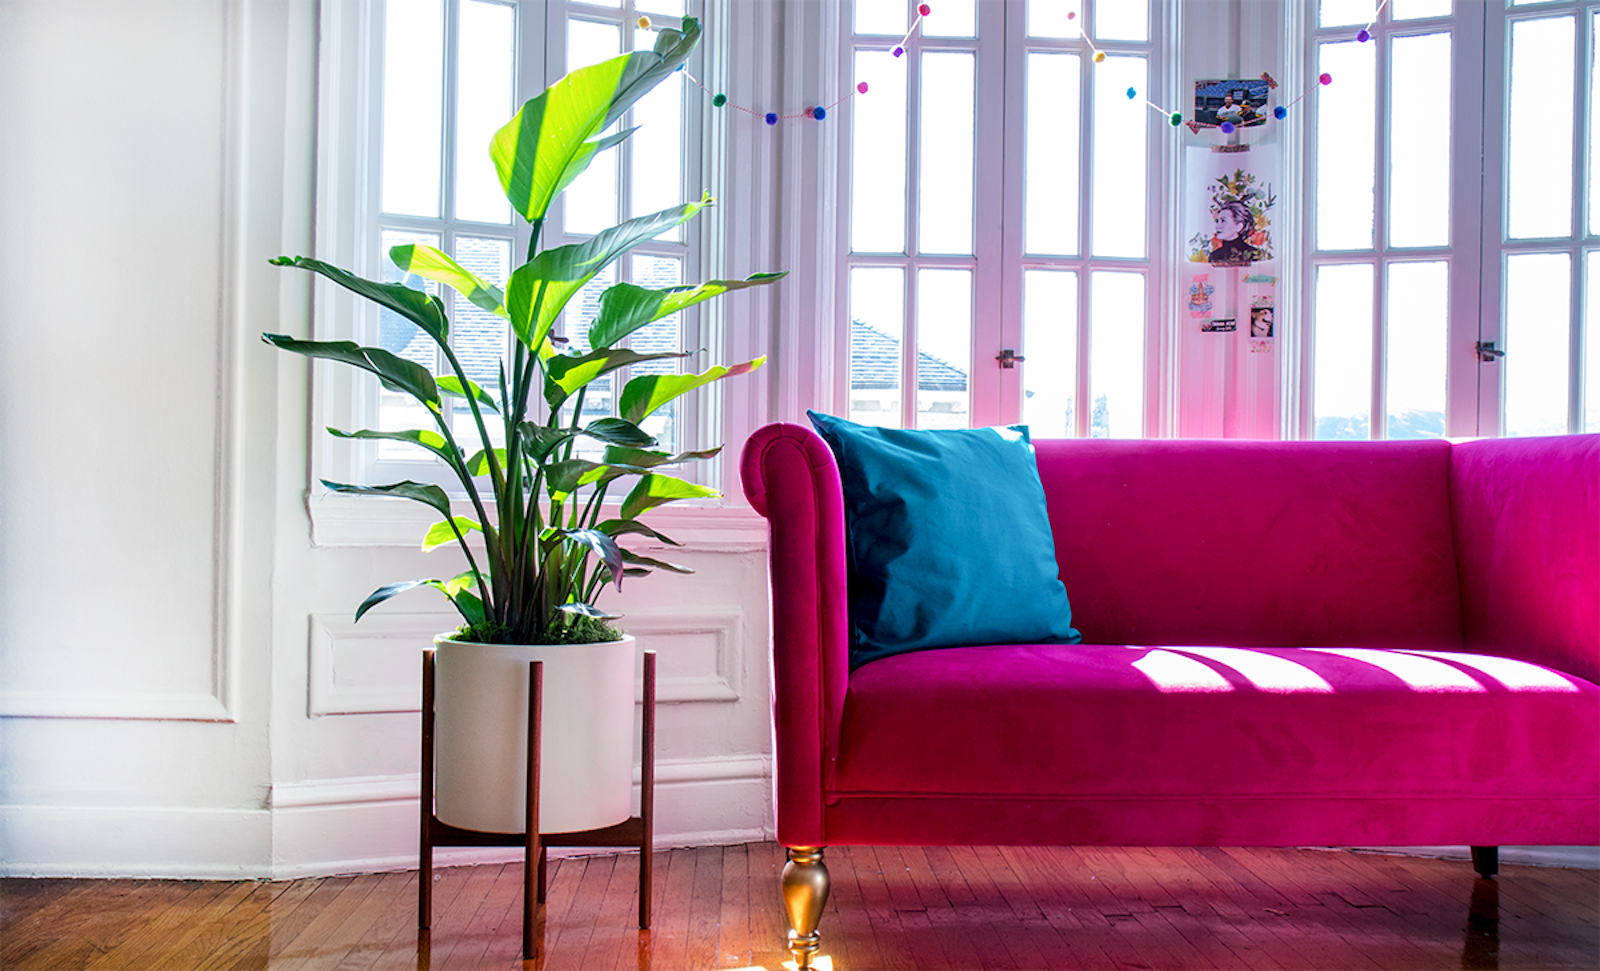 The  Bird of Paradise  does not mind plenty of direct sunlight, but this is not the case for most indoor plants!